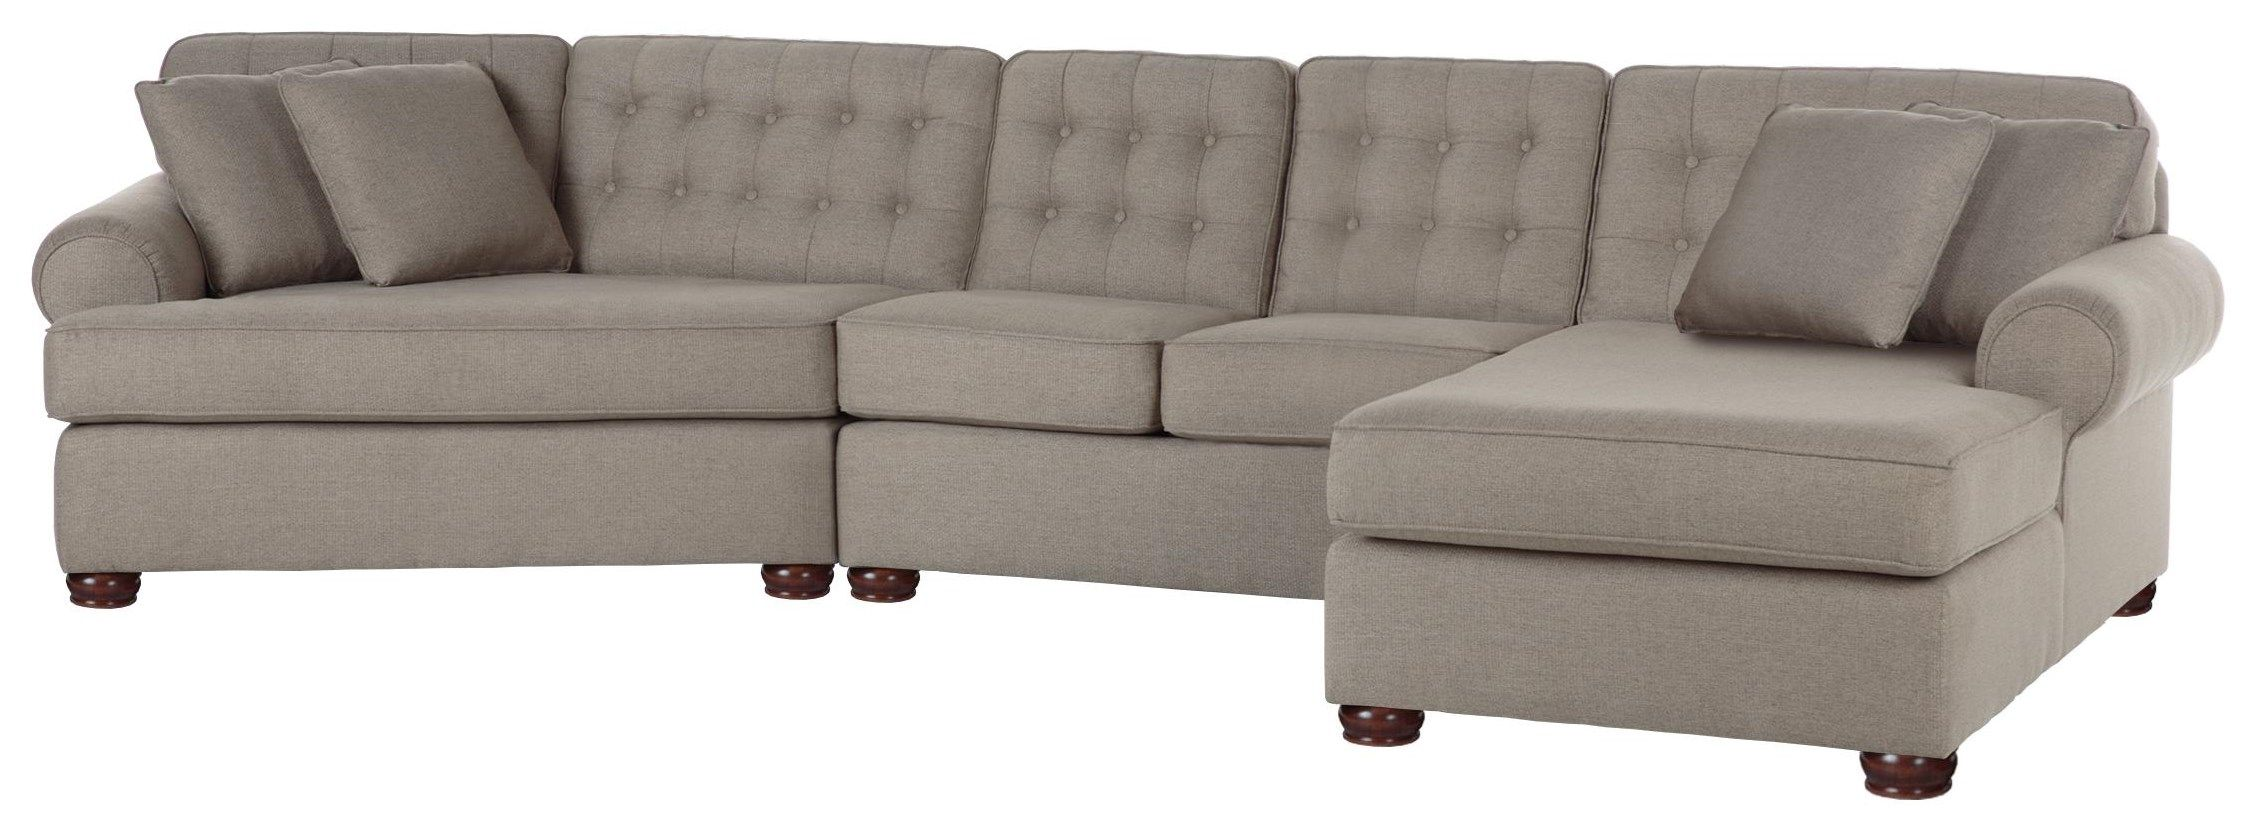 Just Your Style Sectional By Justice Furniture Bedding In 2020